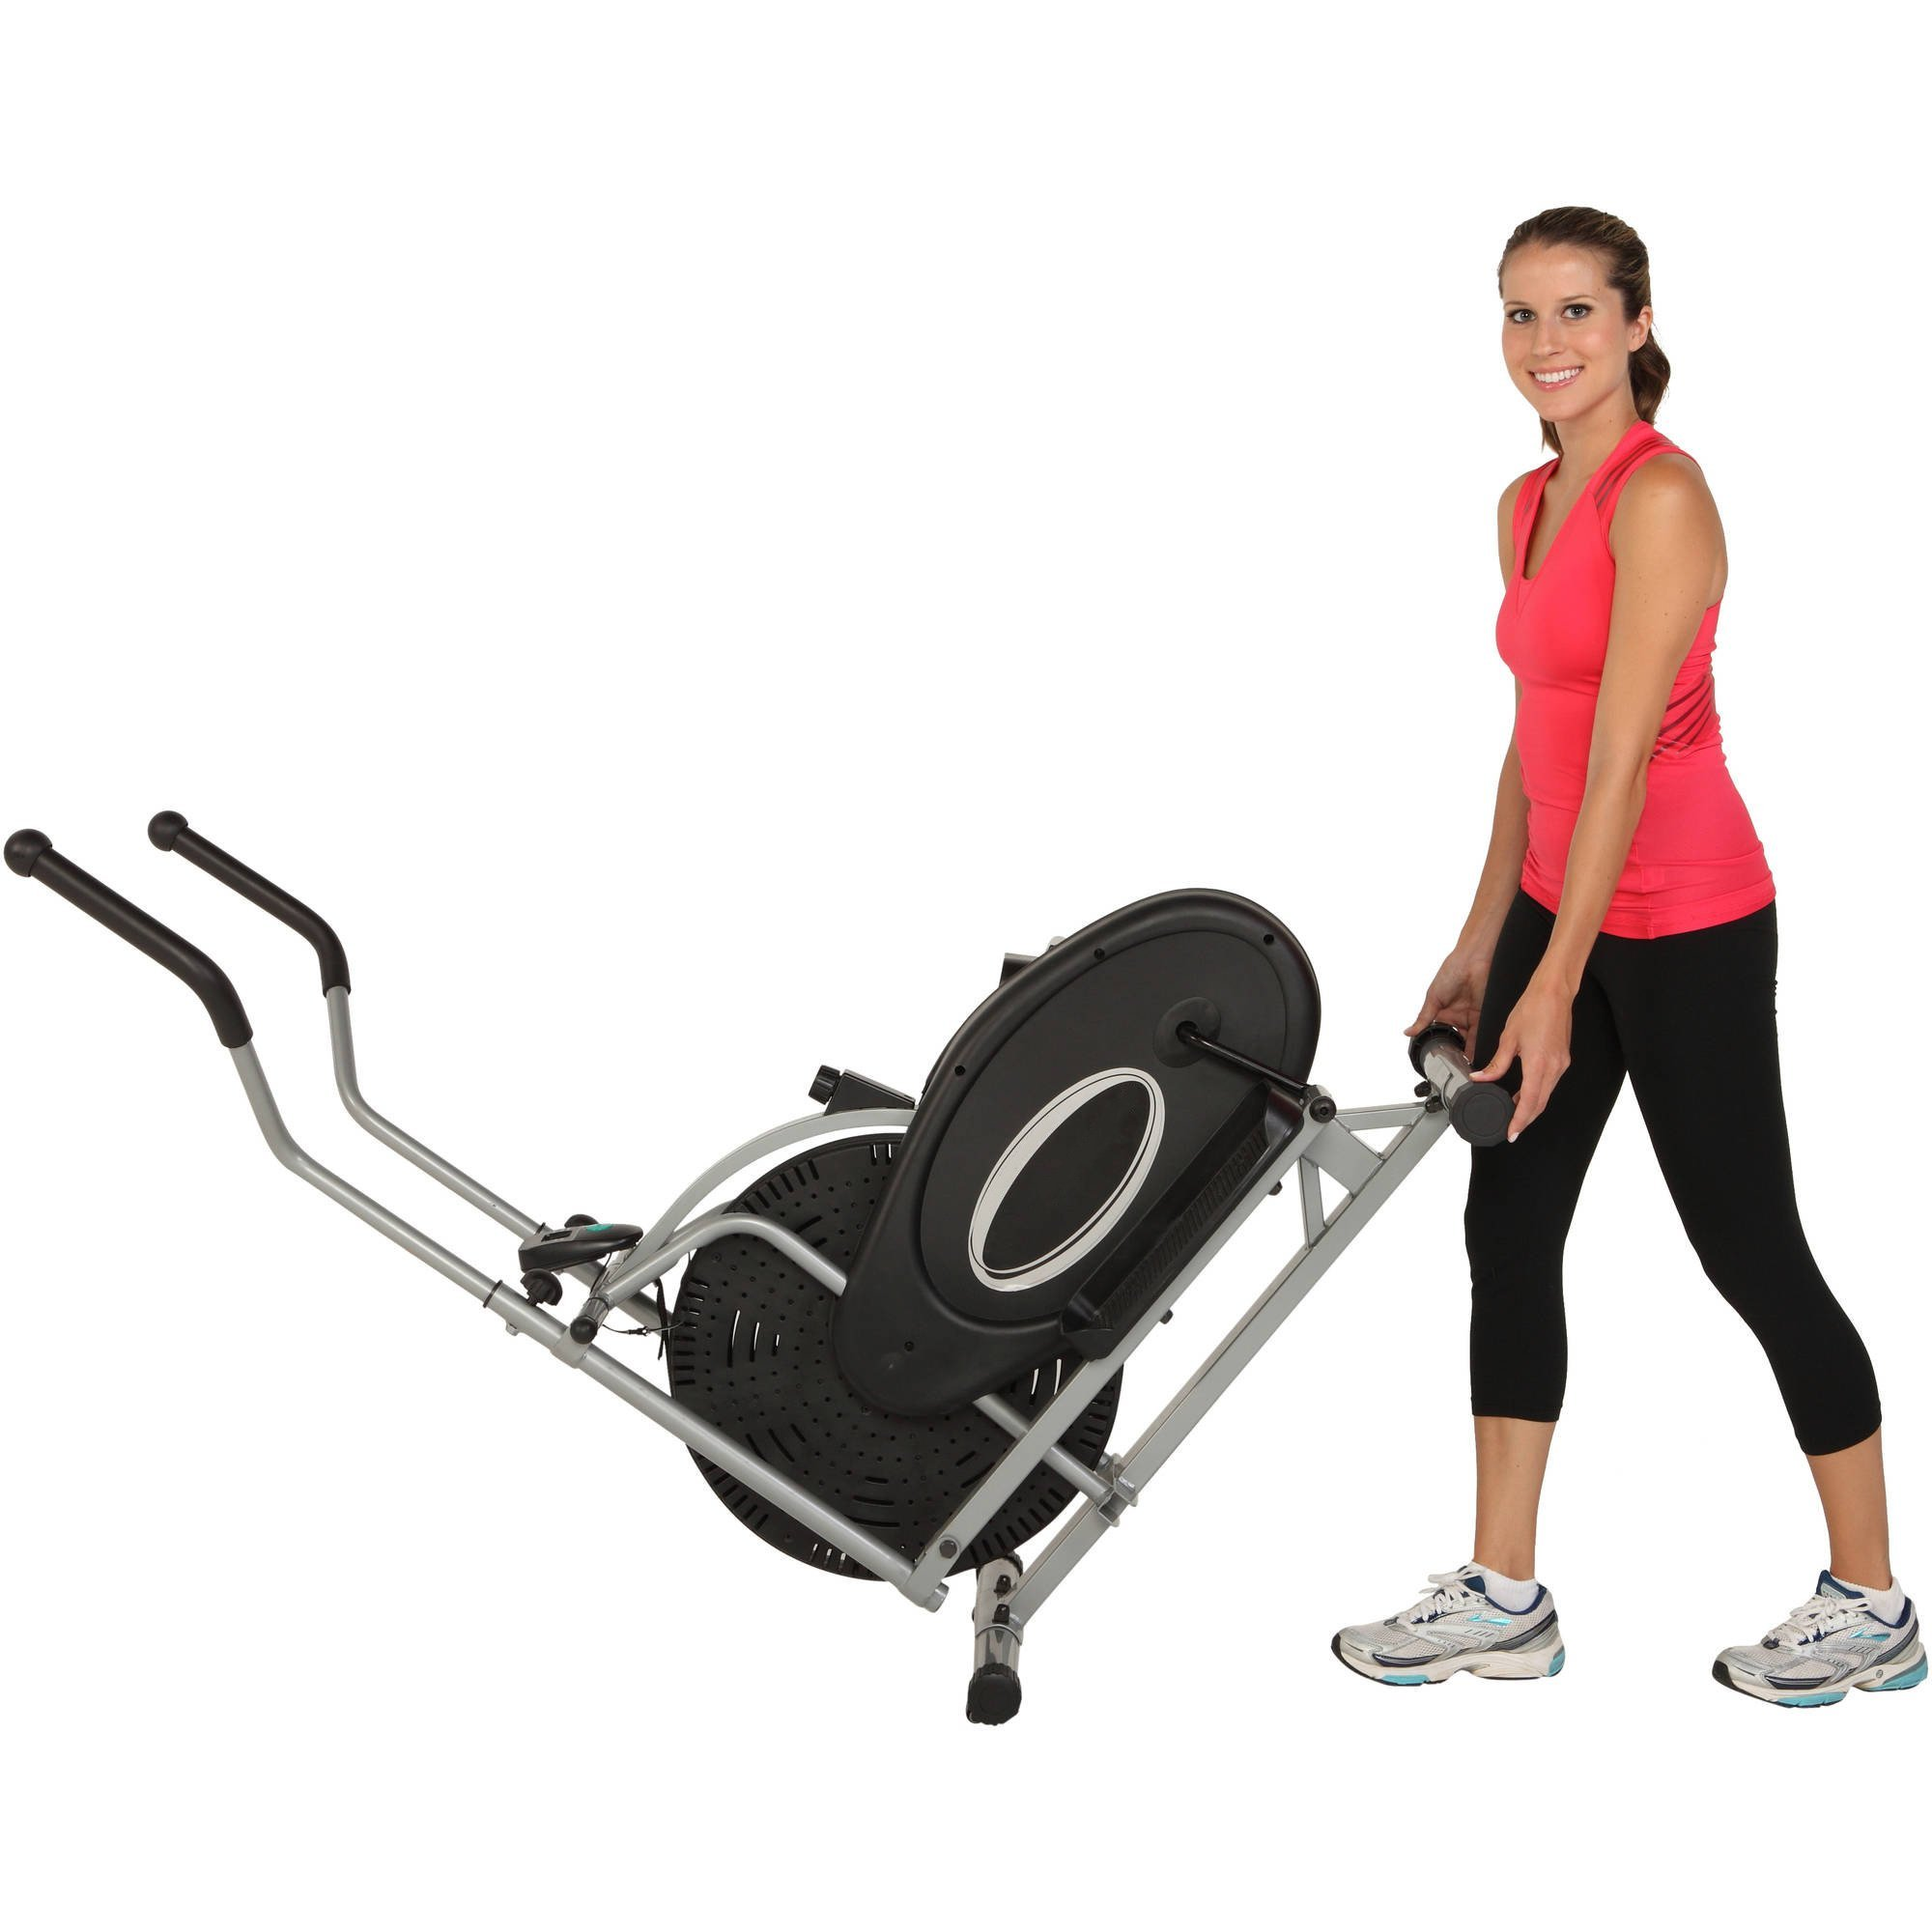 New super plus - Air Elliptical - 2 year warranty by Exerpeutic (Image #1)